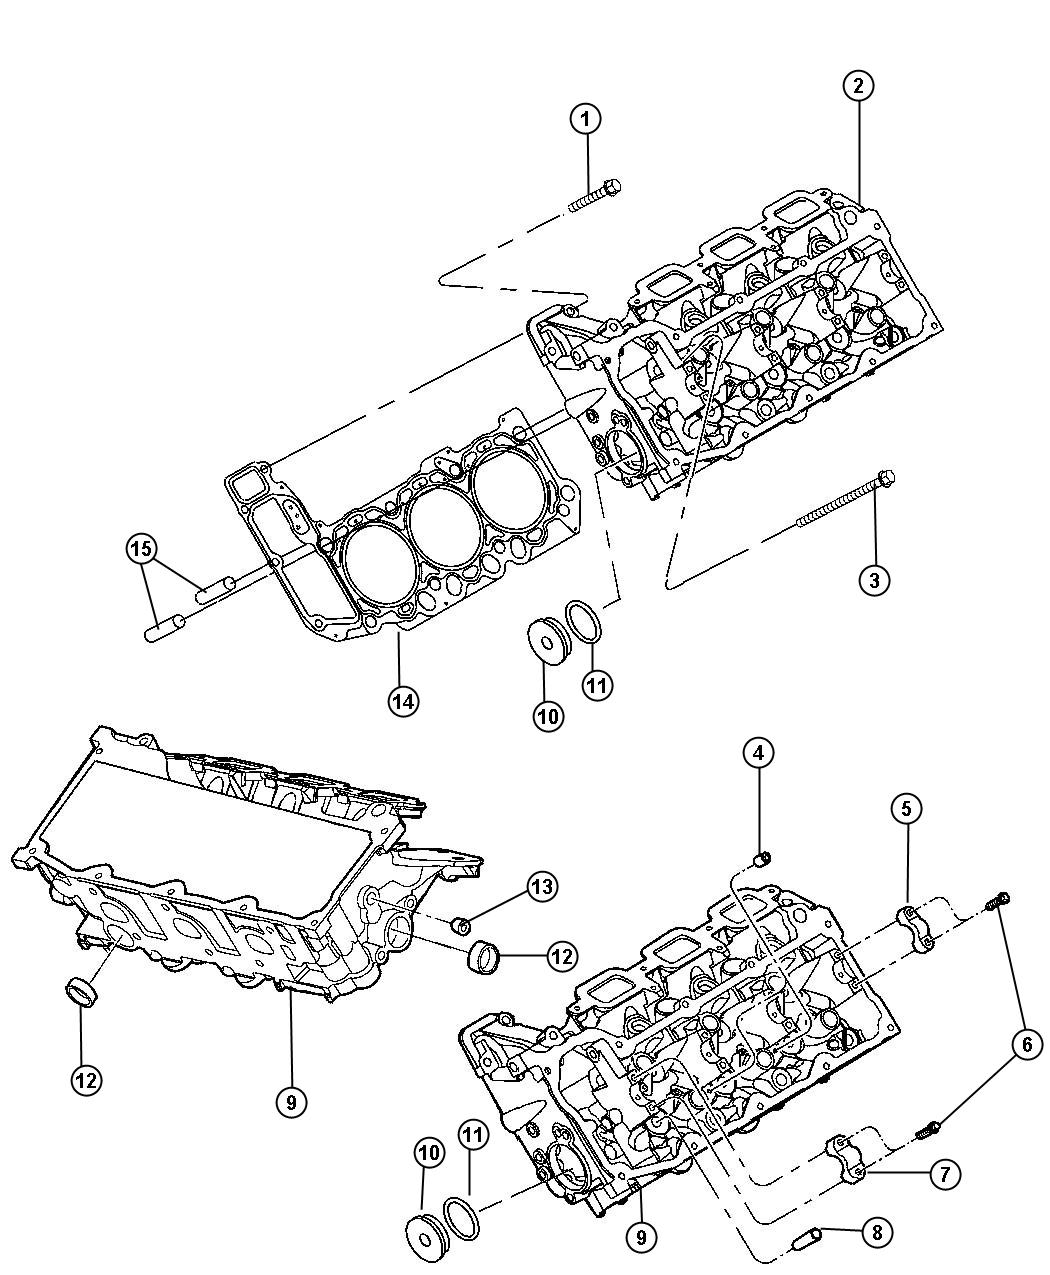 2007 Jeep Liberty Cylinder Head And Mounting 3.7L [3.7L